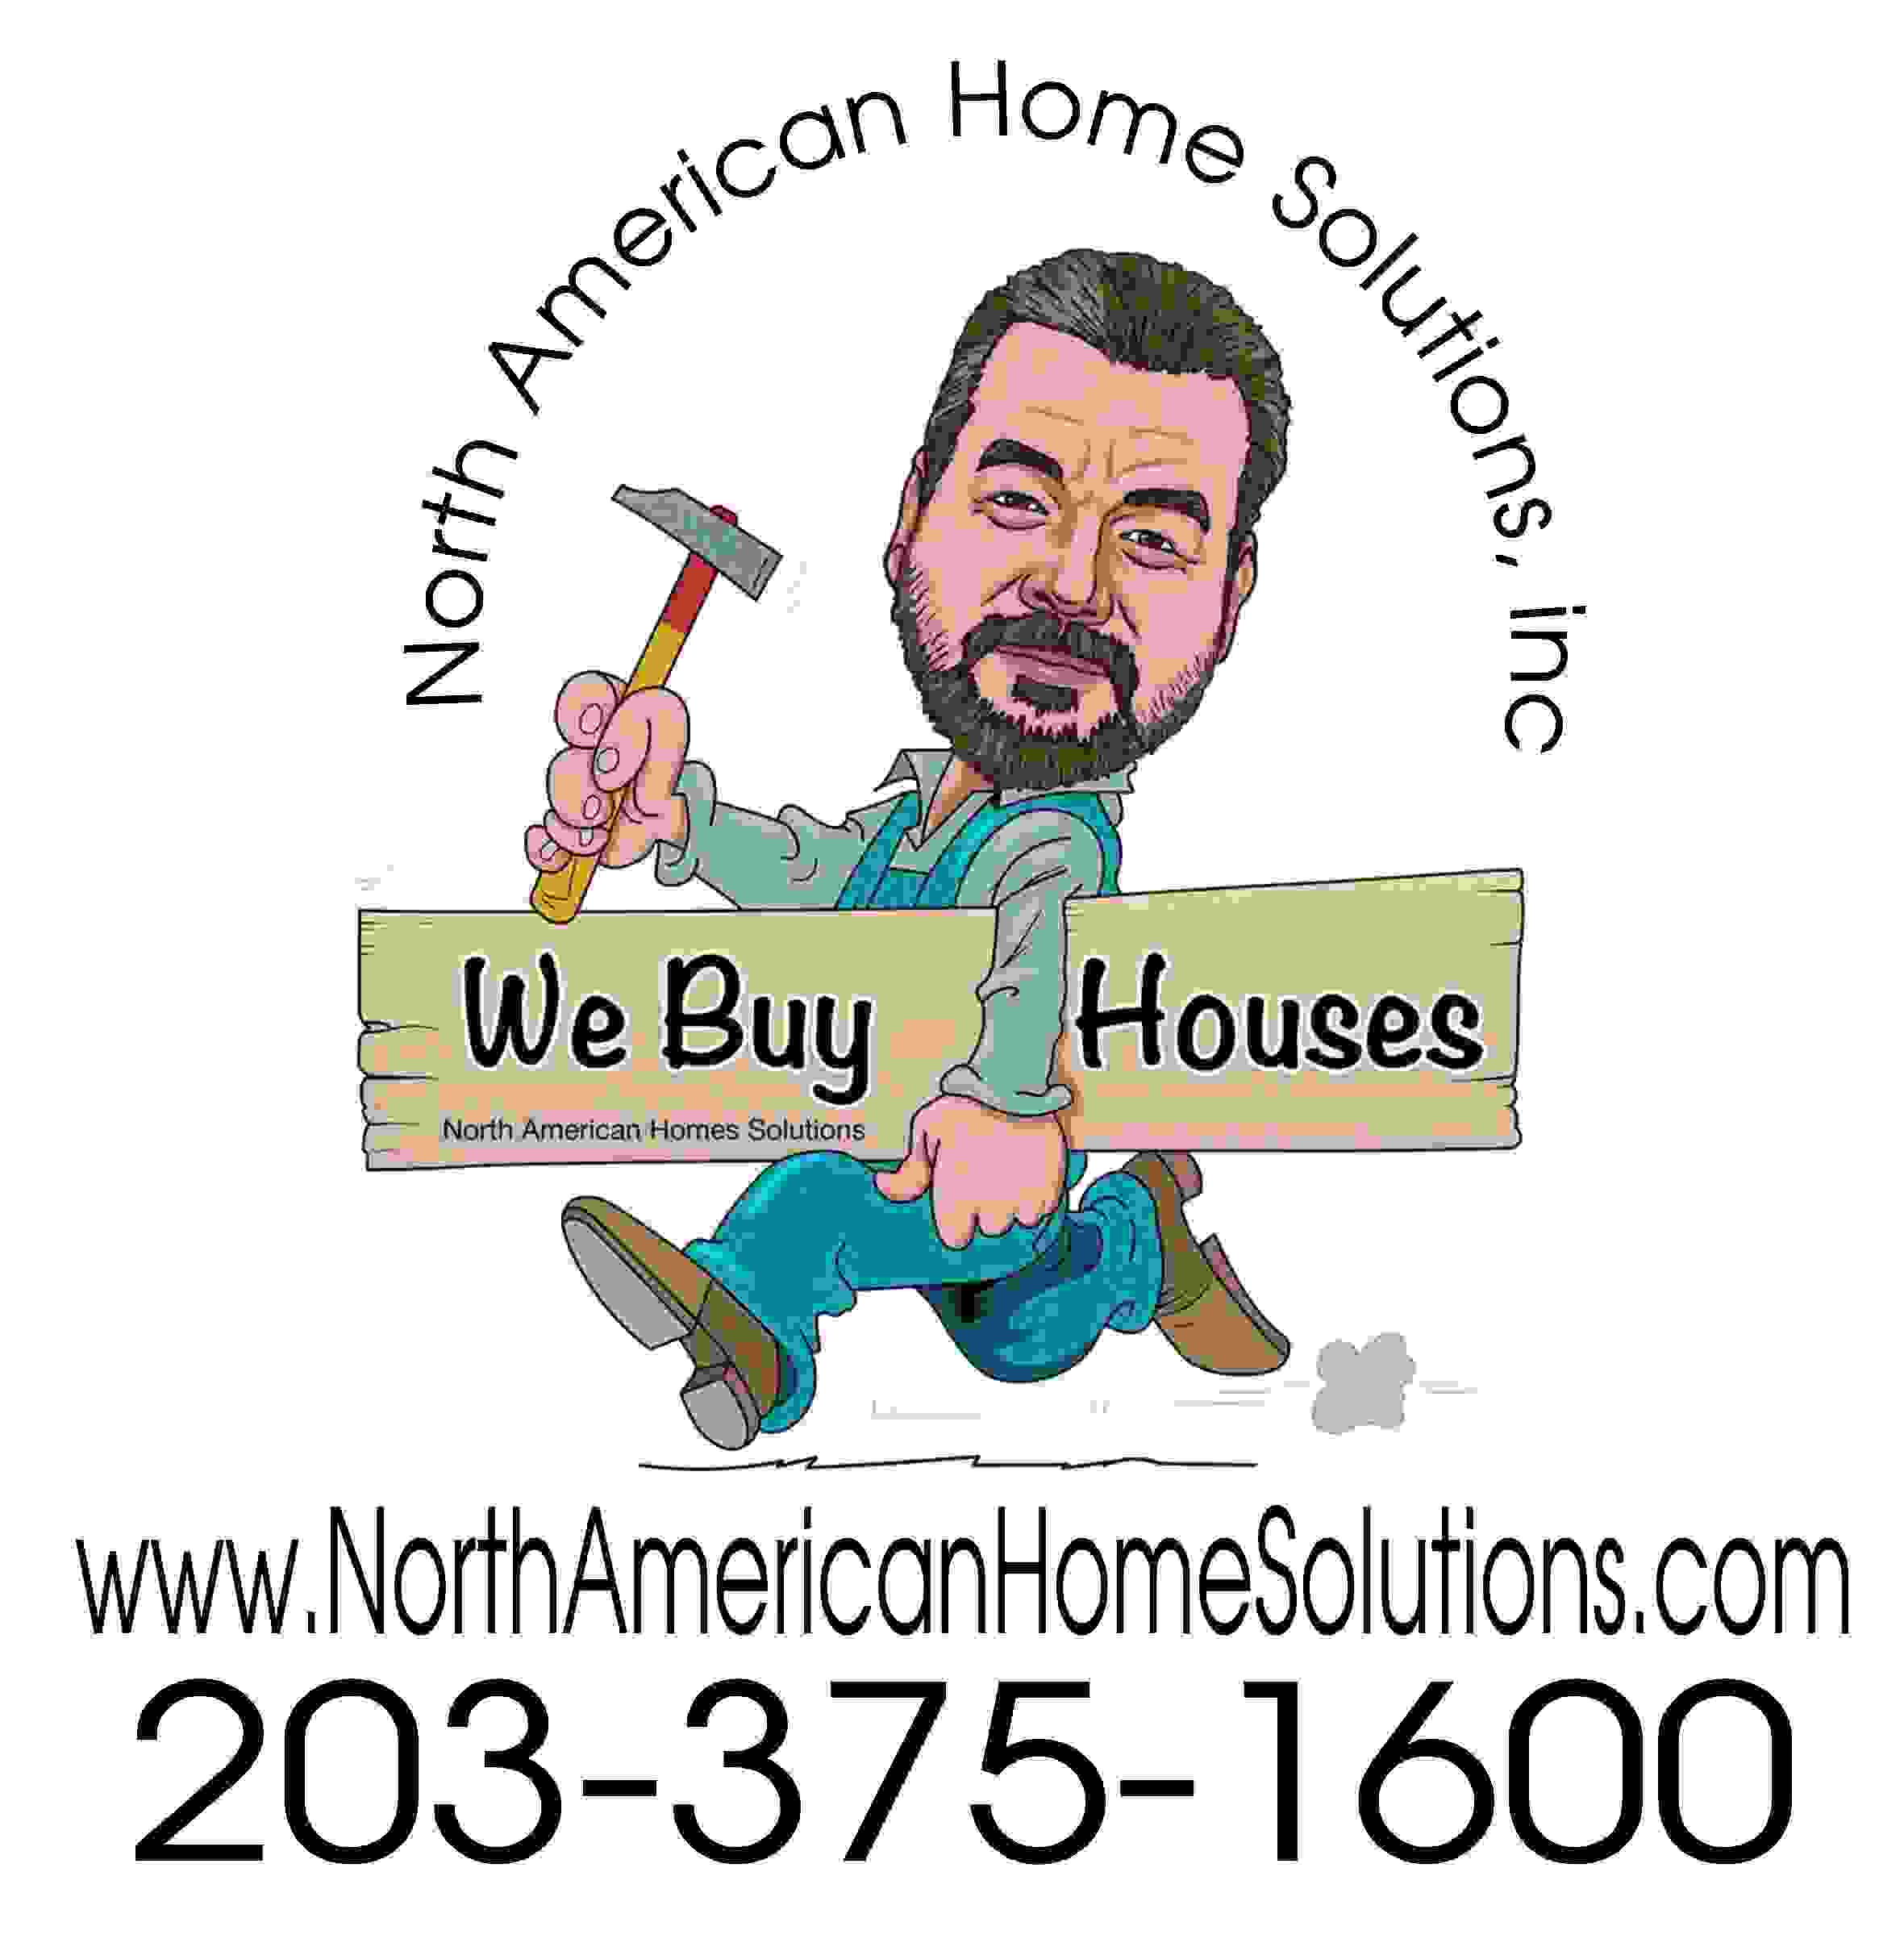 Mike Robinson's rehab company North American Home solutions, inc